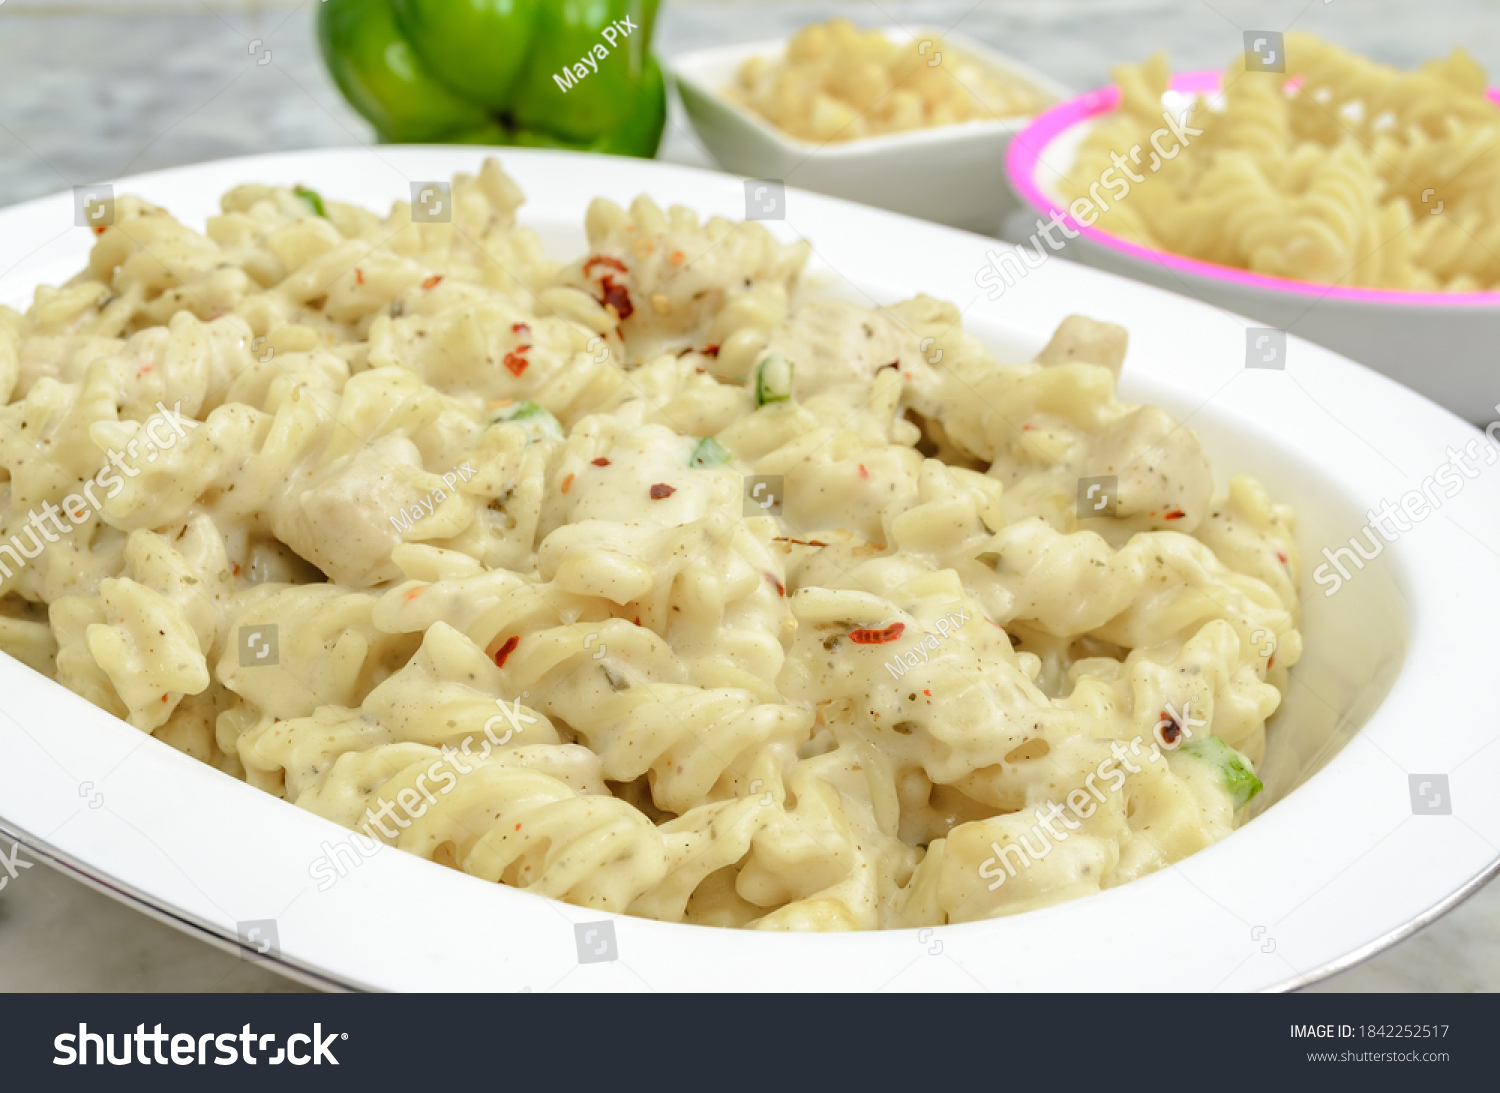 Creamy White Sauce Chicken Pasta along with the ingredients beside.